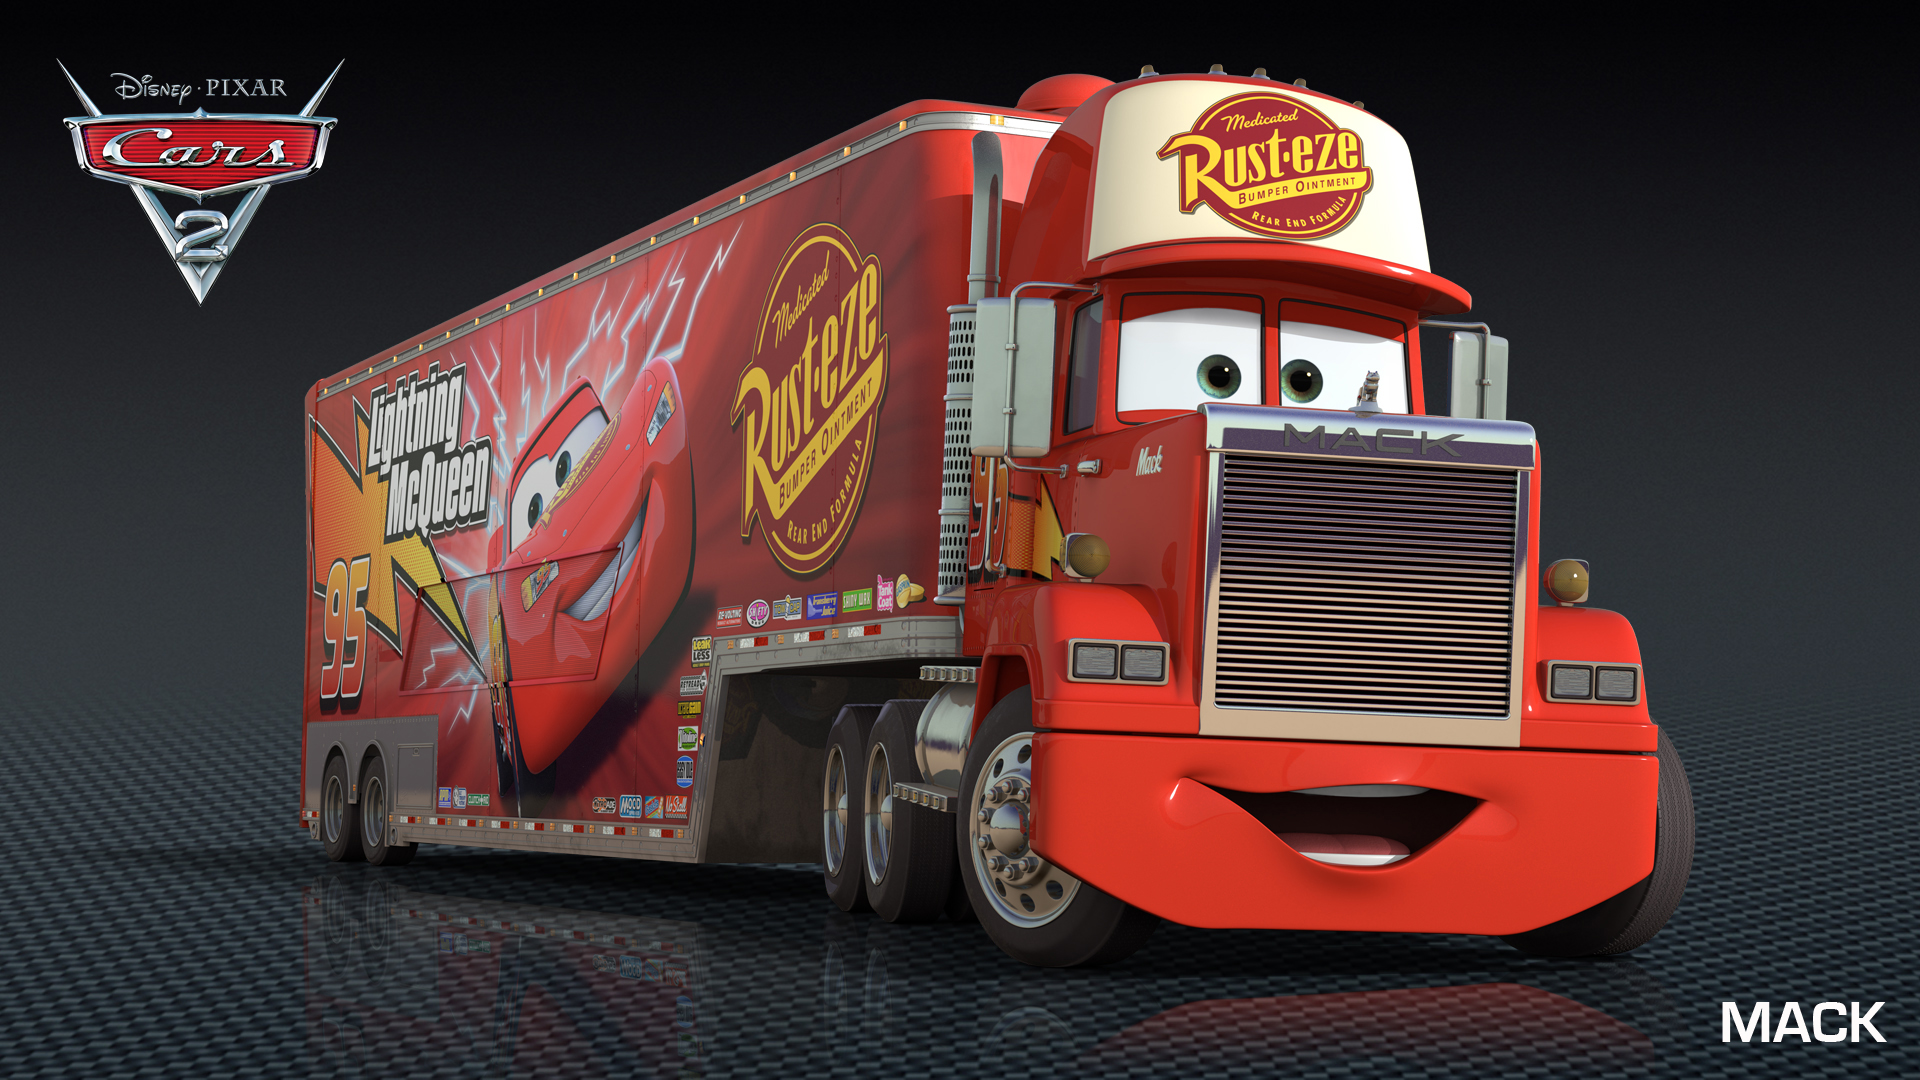 Cars 2 Character Images  HD Wallpaper